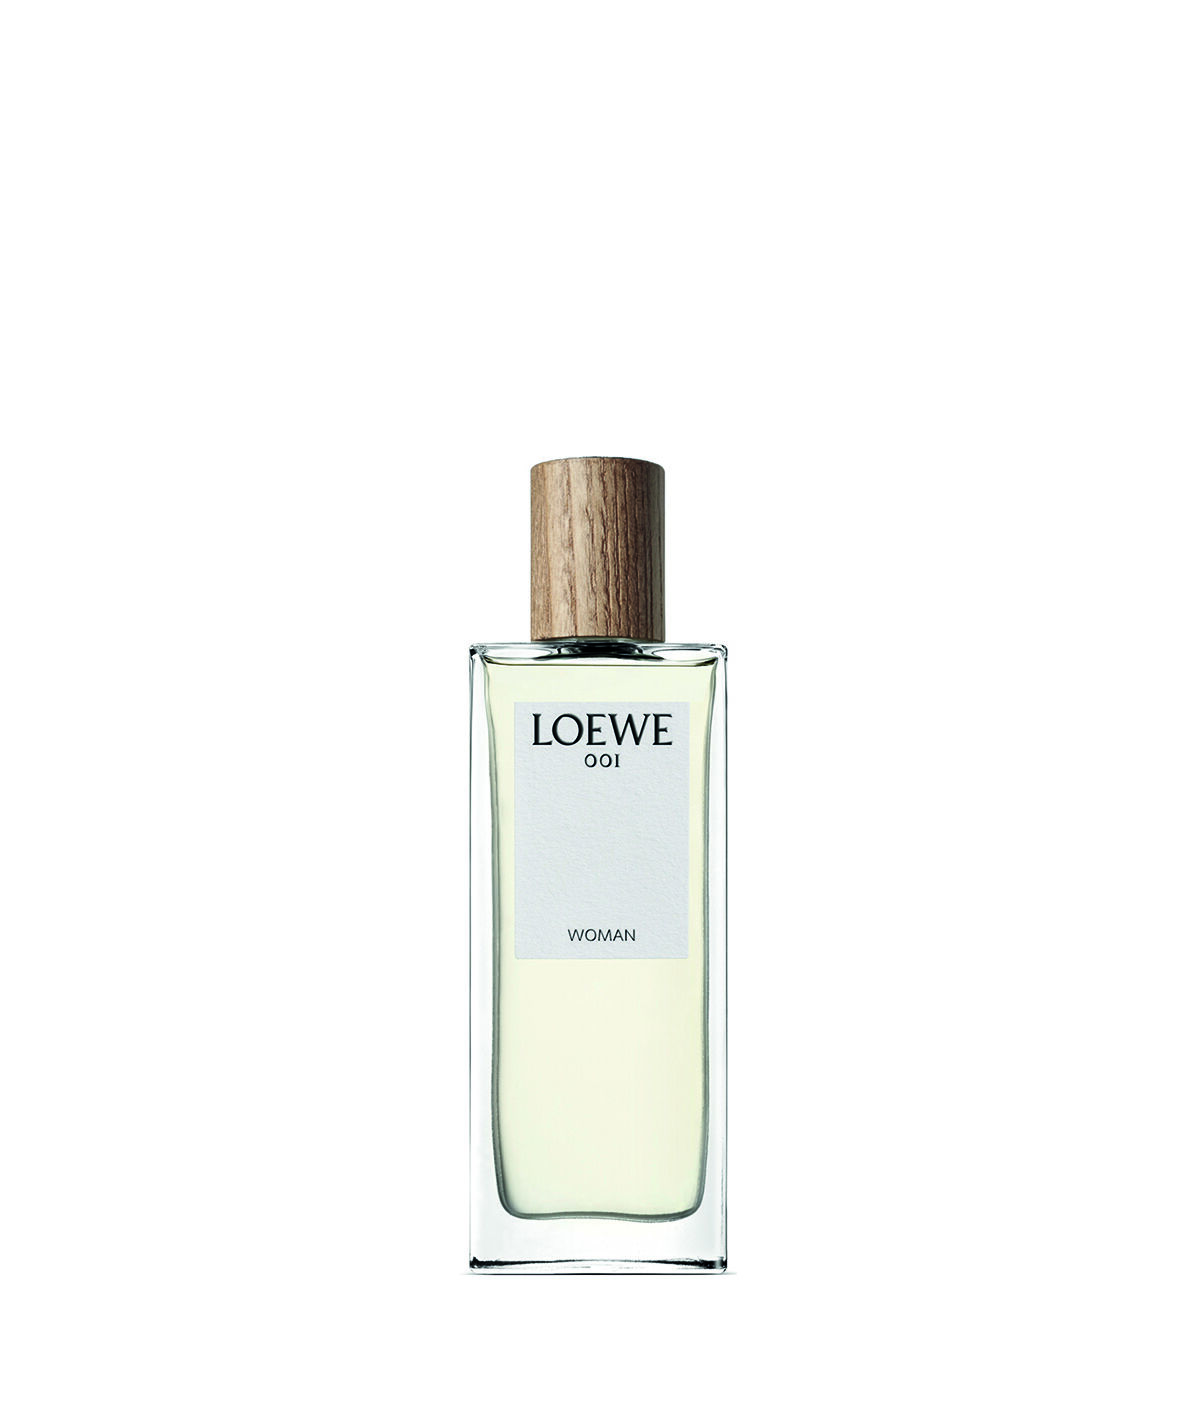 LOEWE Loewe 001 Woman Edp 50Ml Sin Color all